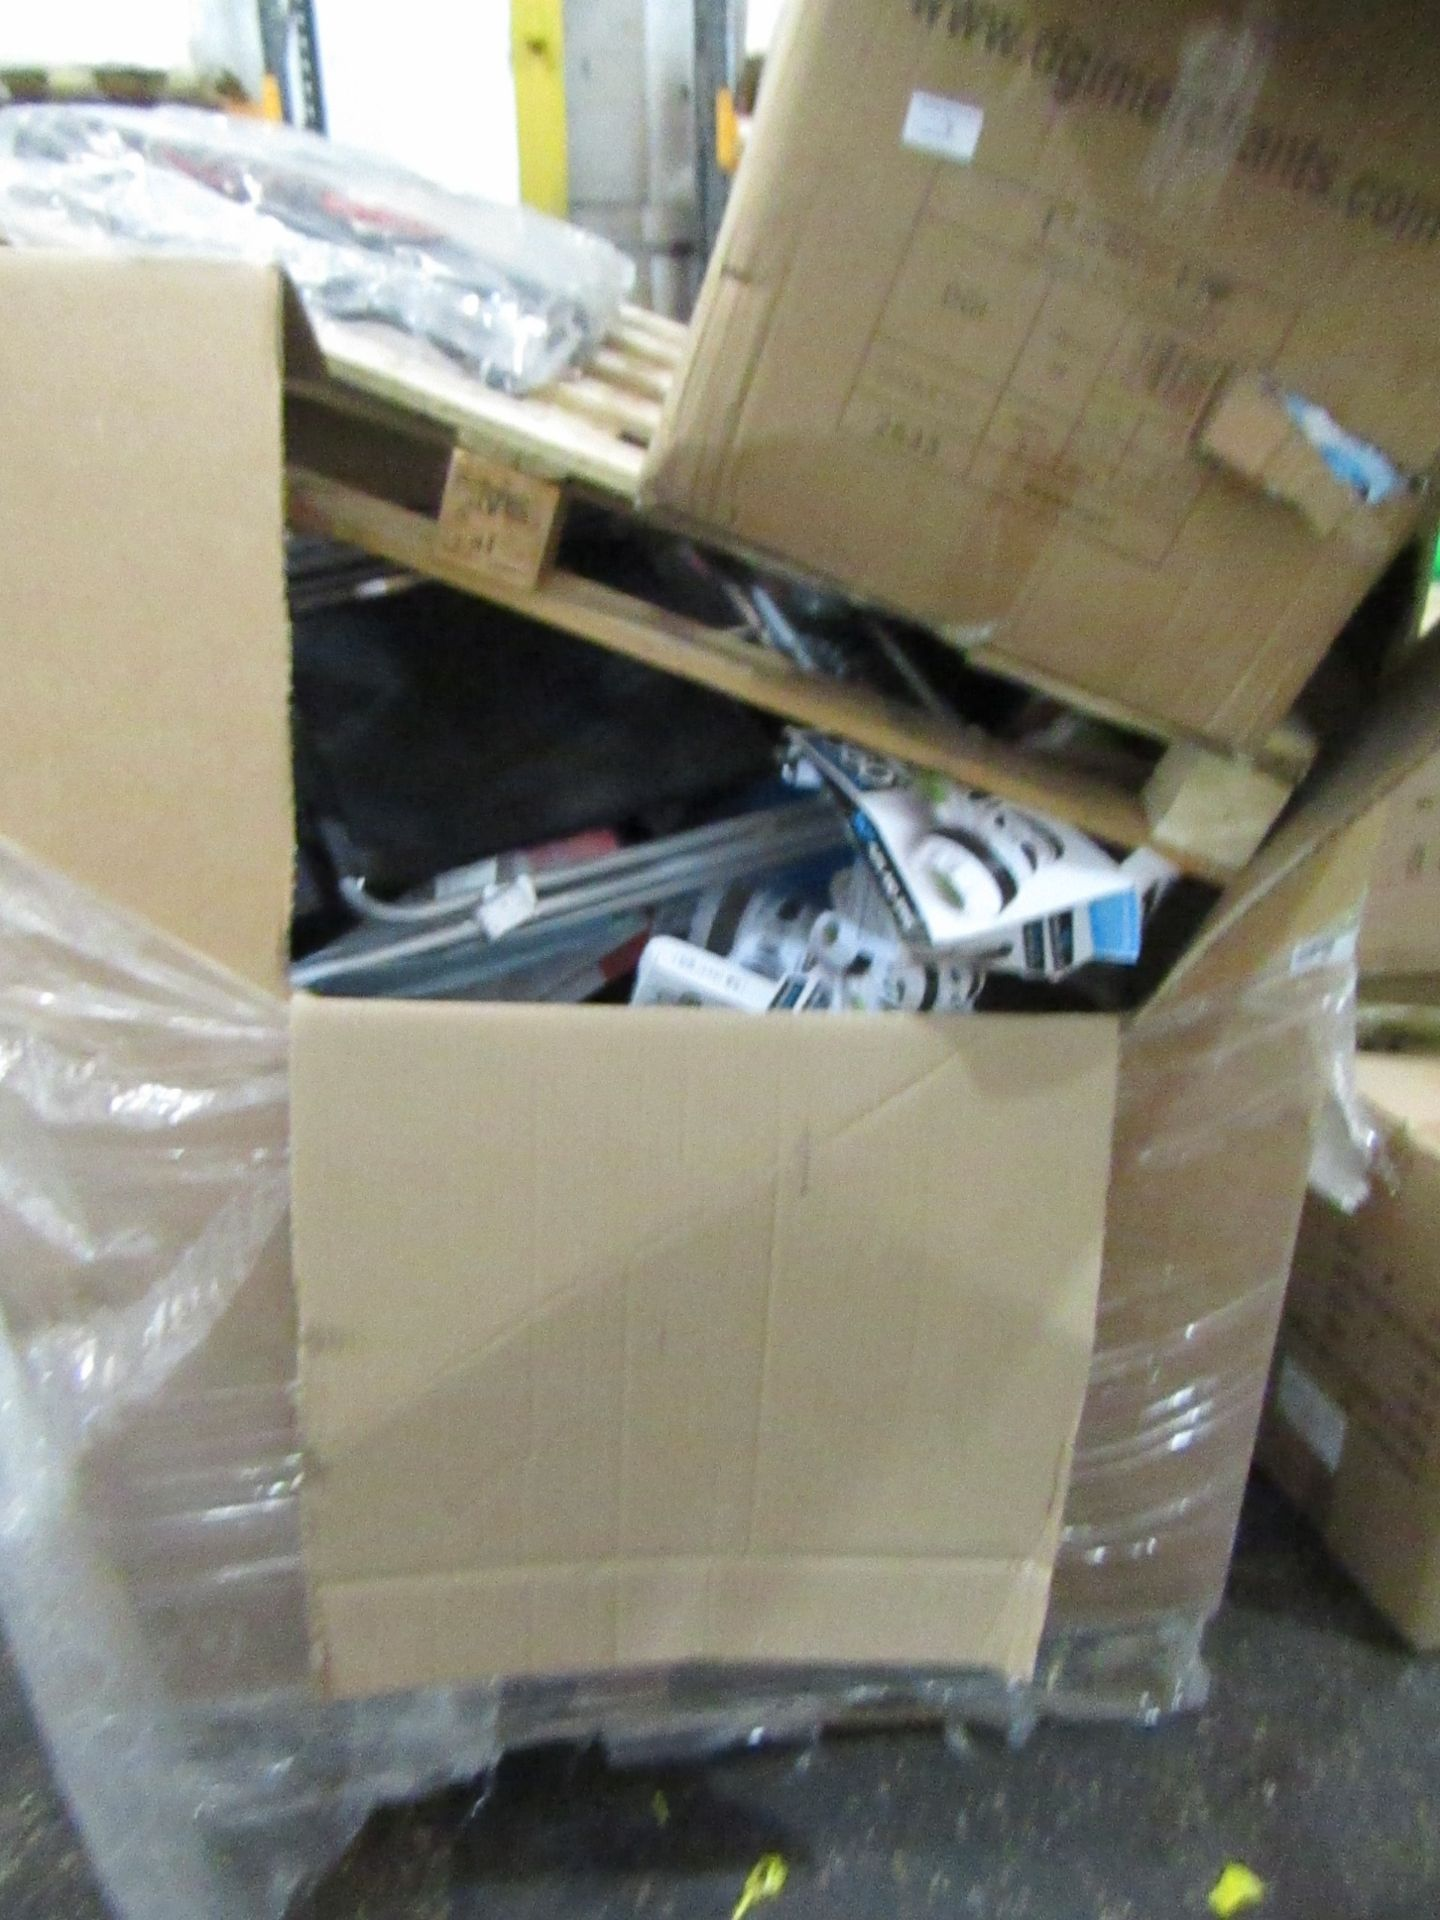 Lot 9 - Pallet of approx 40 various faulty electrical and non electrical customer returns from a large